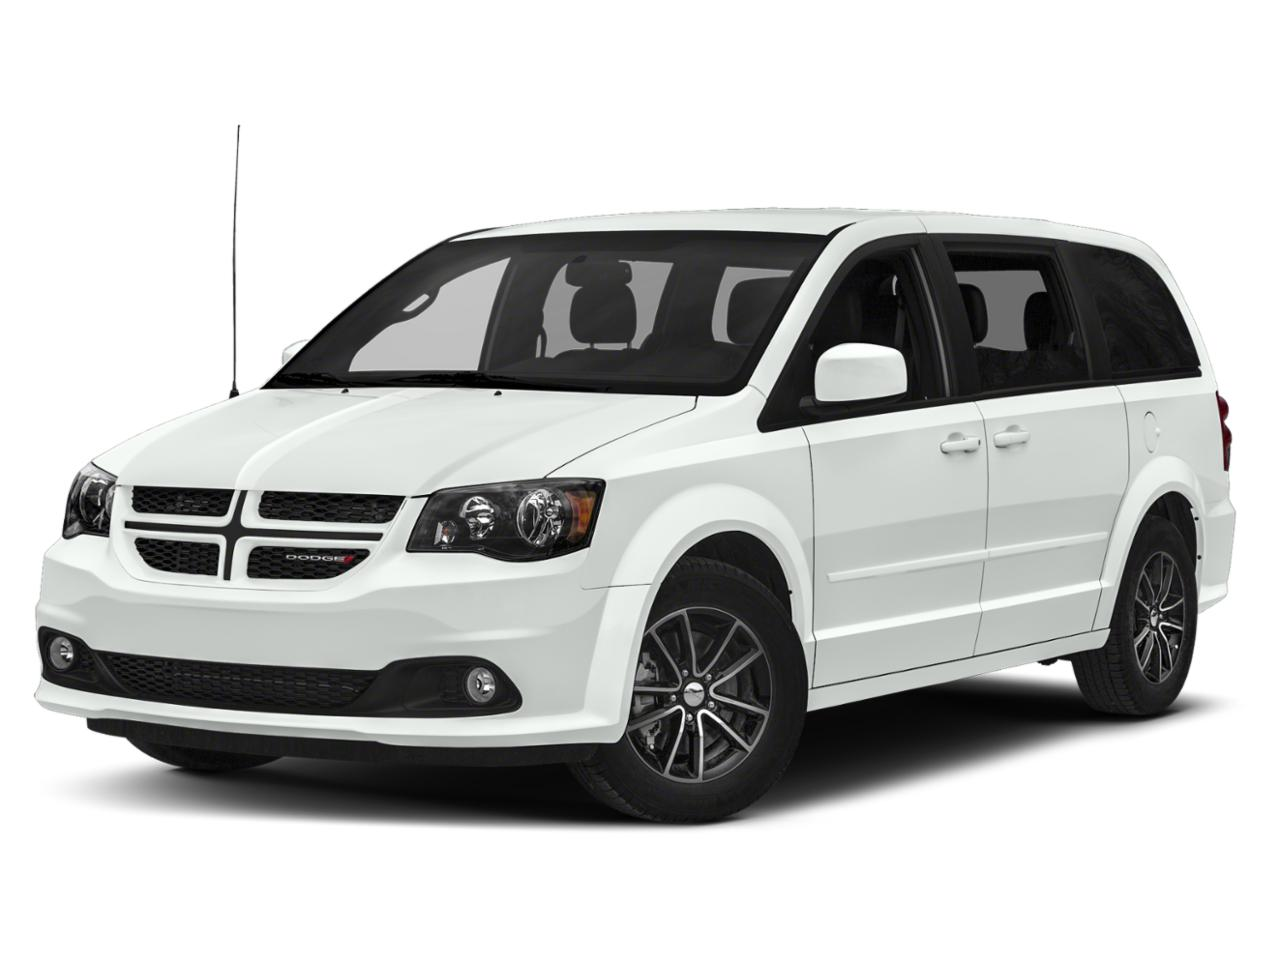 2019 Dodge Grand Caravan Vehicle Photo in Amherst, OH 44001